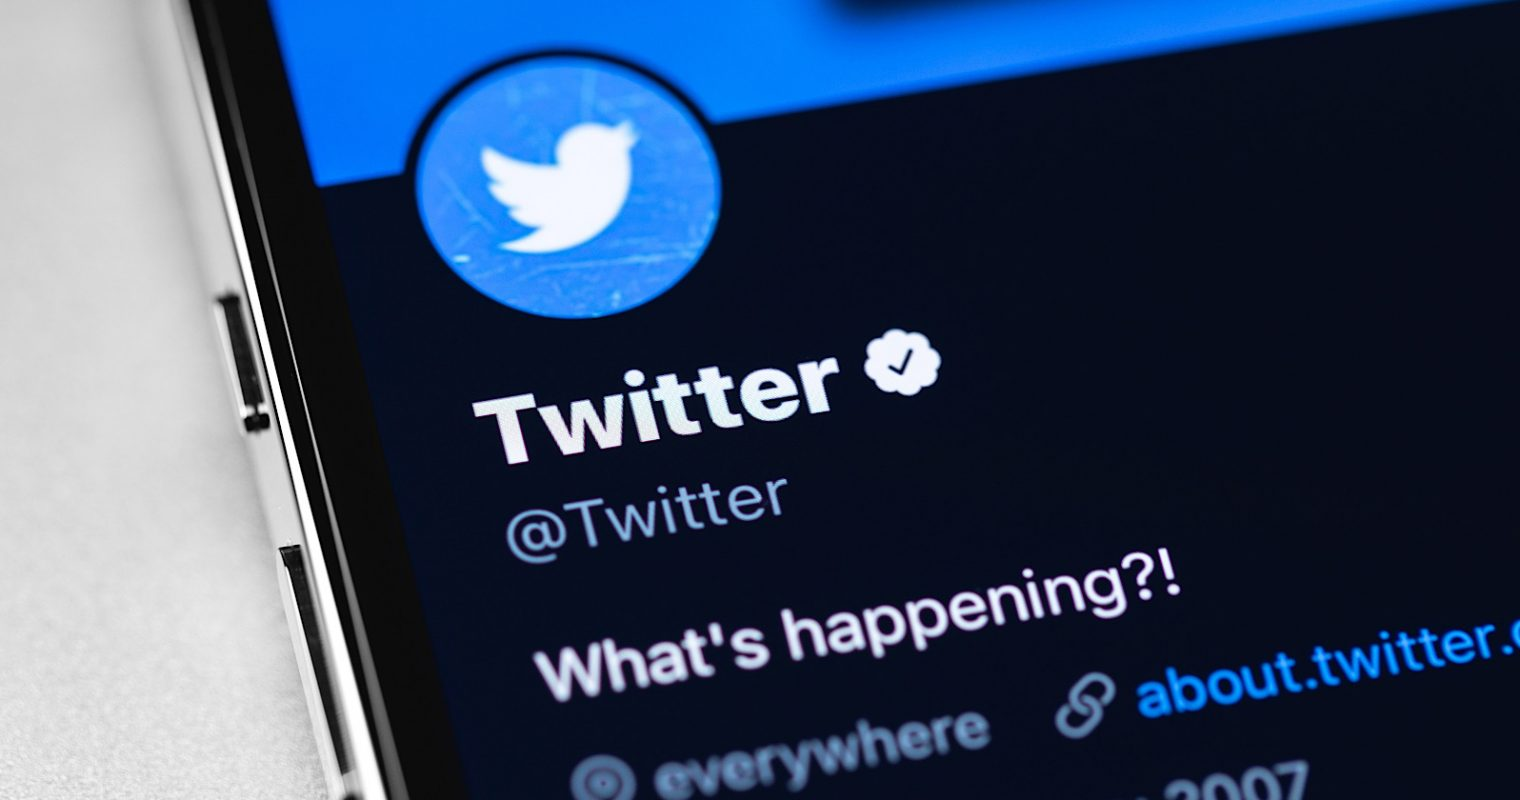 If you used VPN to access Twitter, you've sinned against God — Nigerian Christians told